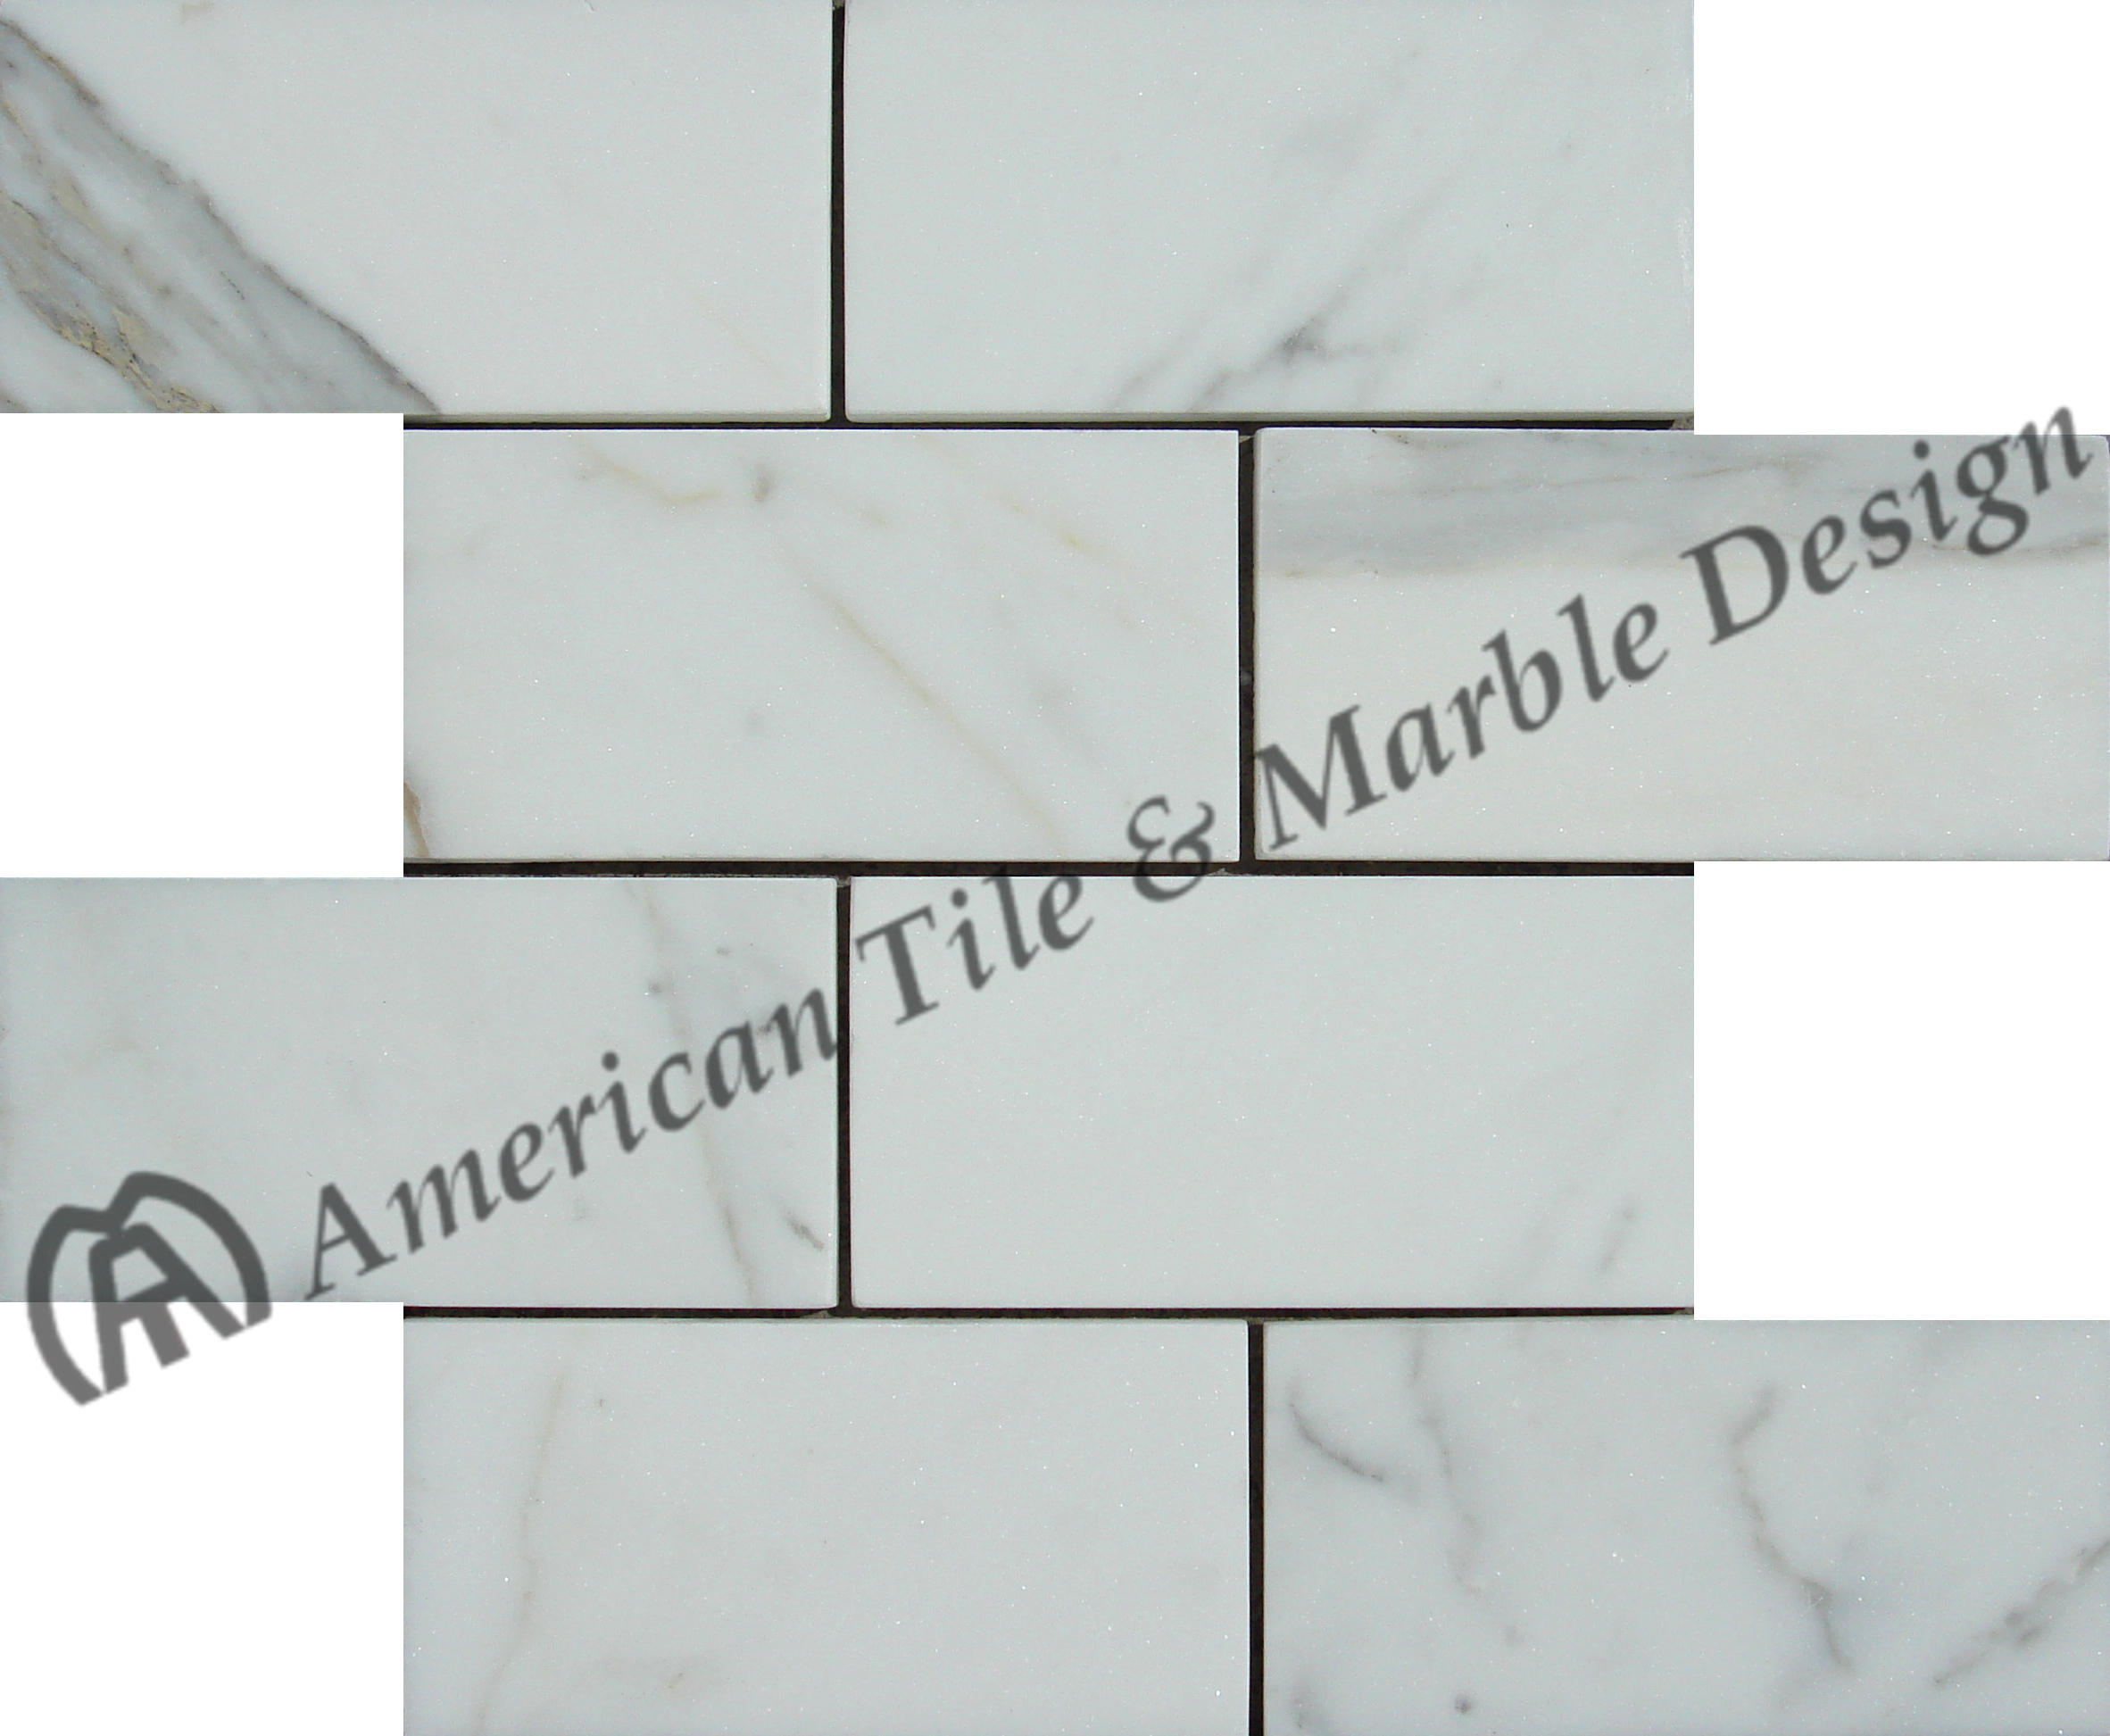 Mt 36 Cg H American Tile And Marble Design